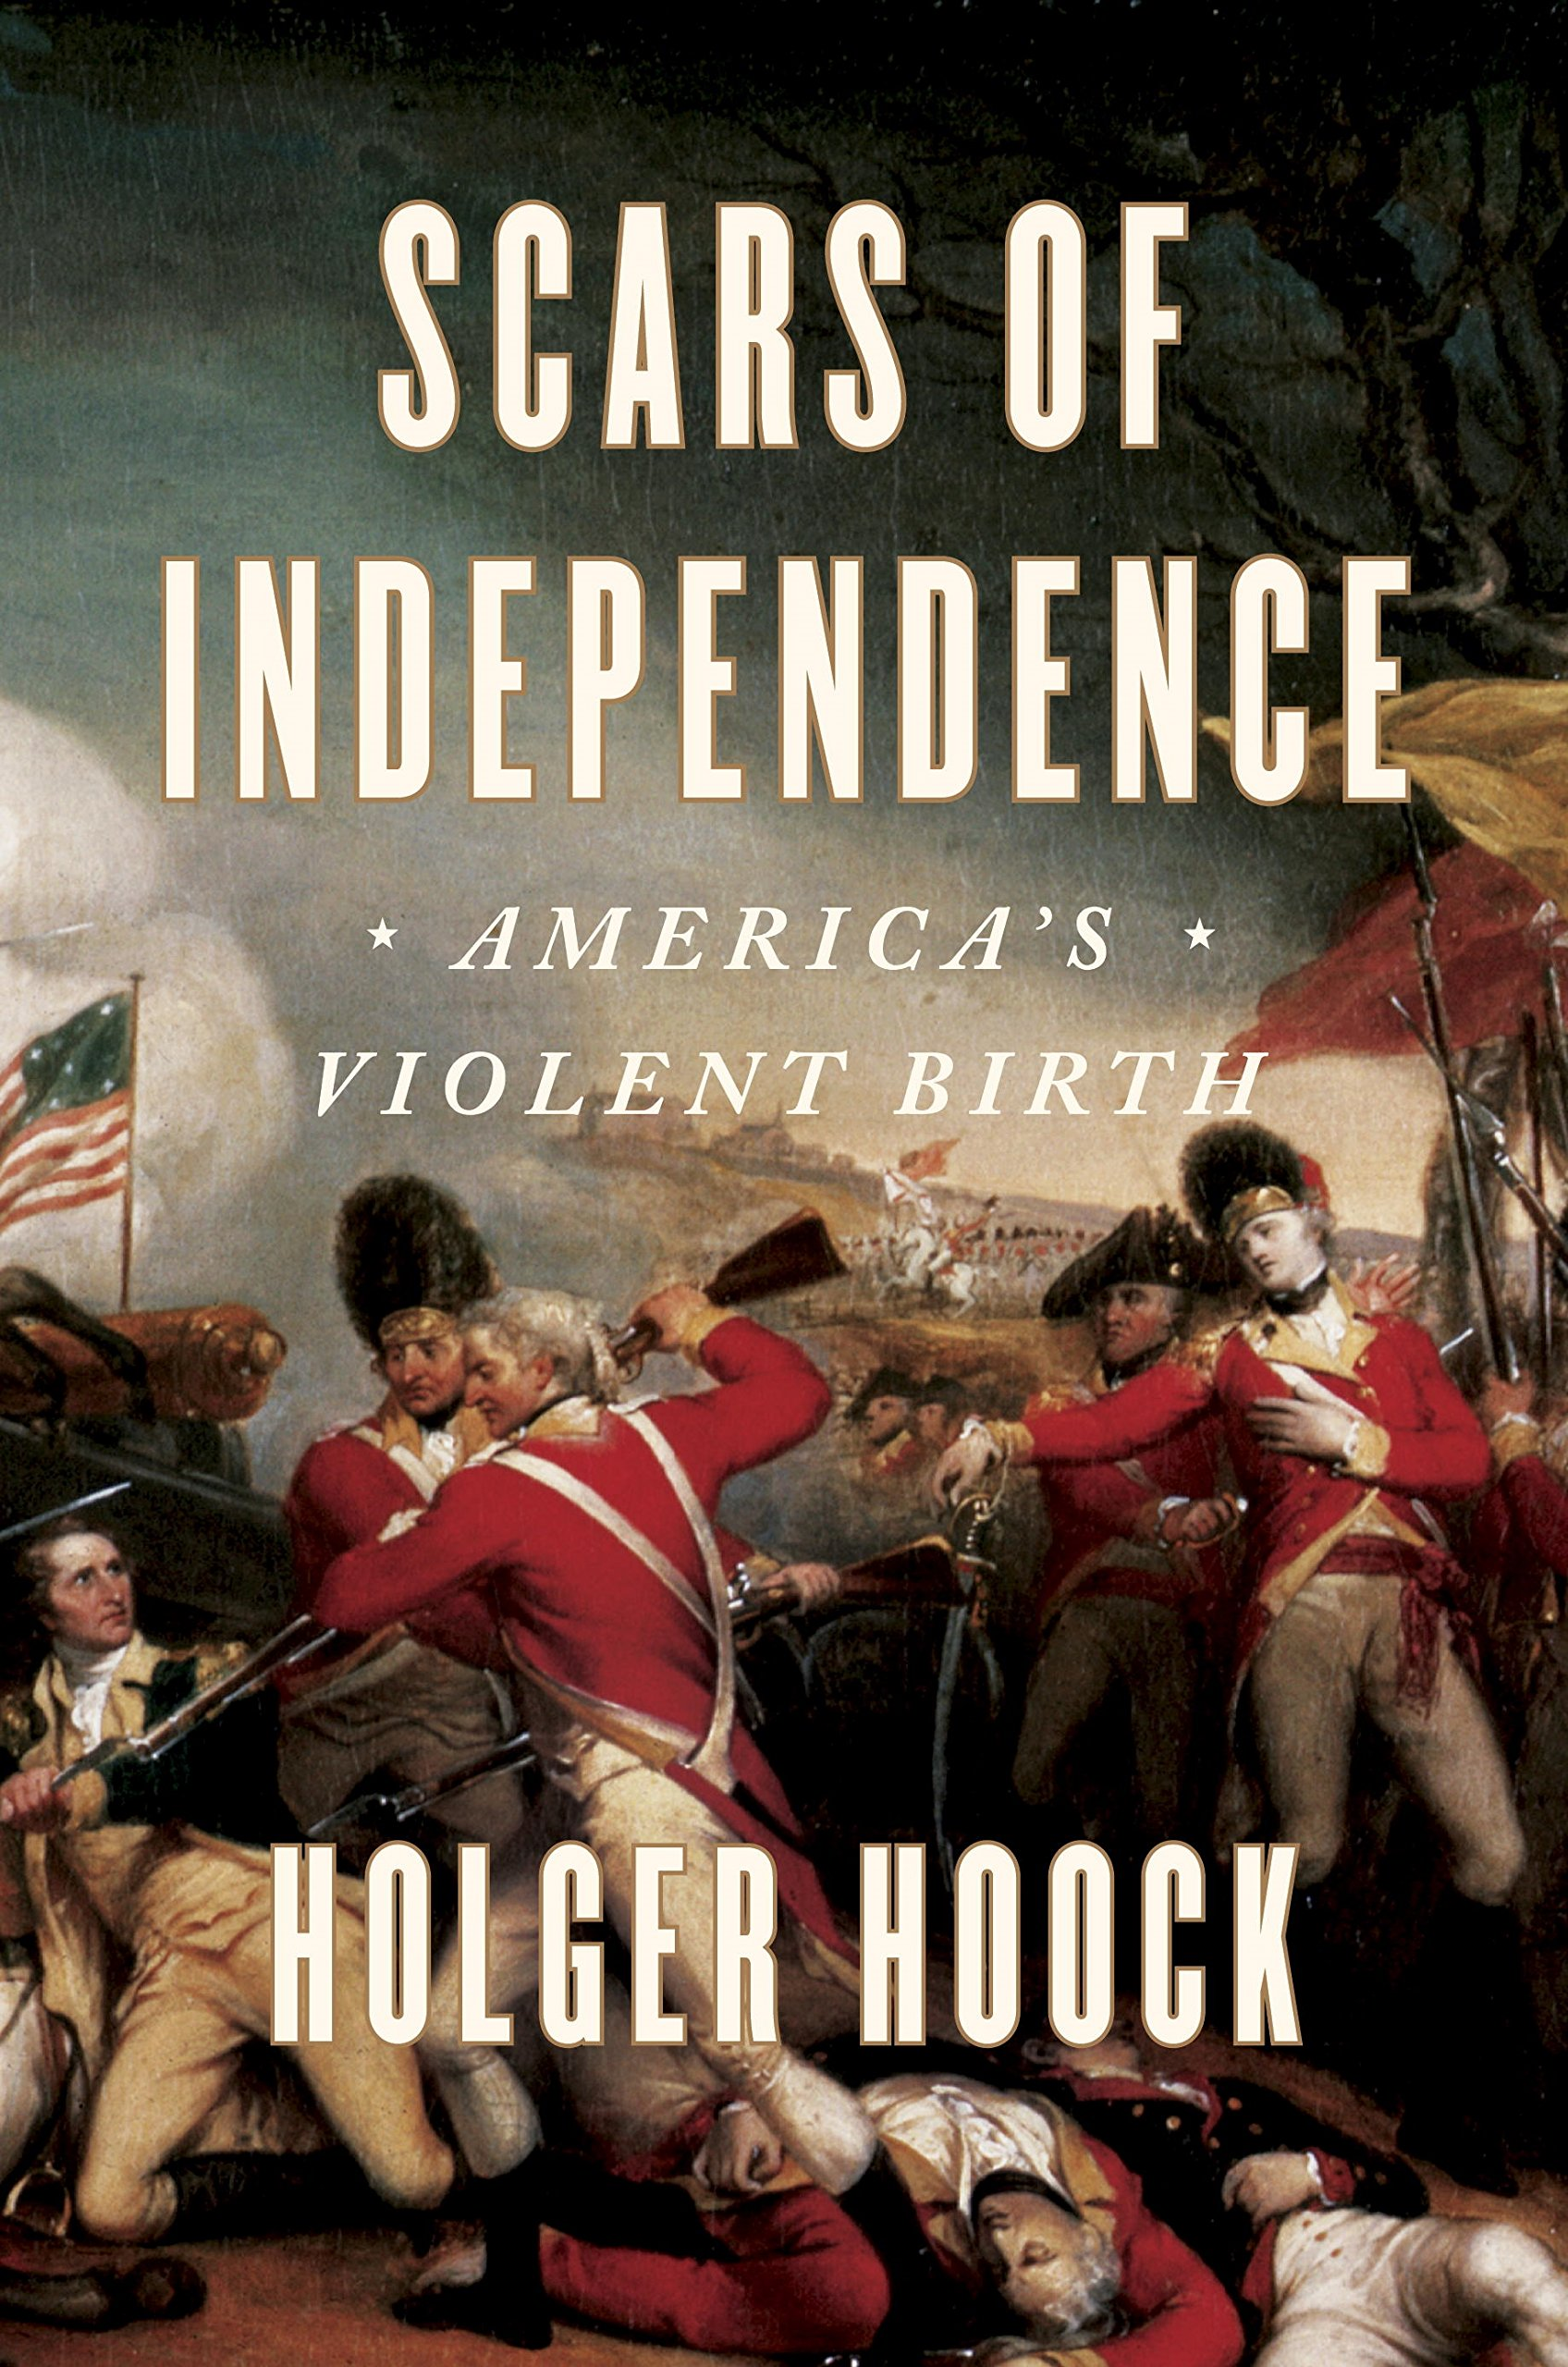 Scars of independence americas violent birth holger hoock scars of independence americas violent birth holger hoock 9780804137287 amazon books fandeluxe Images